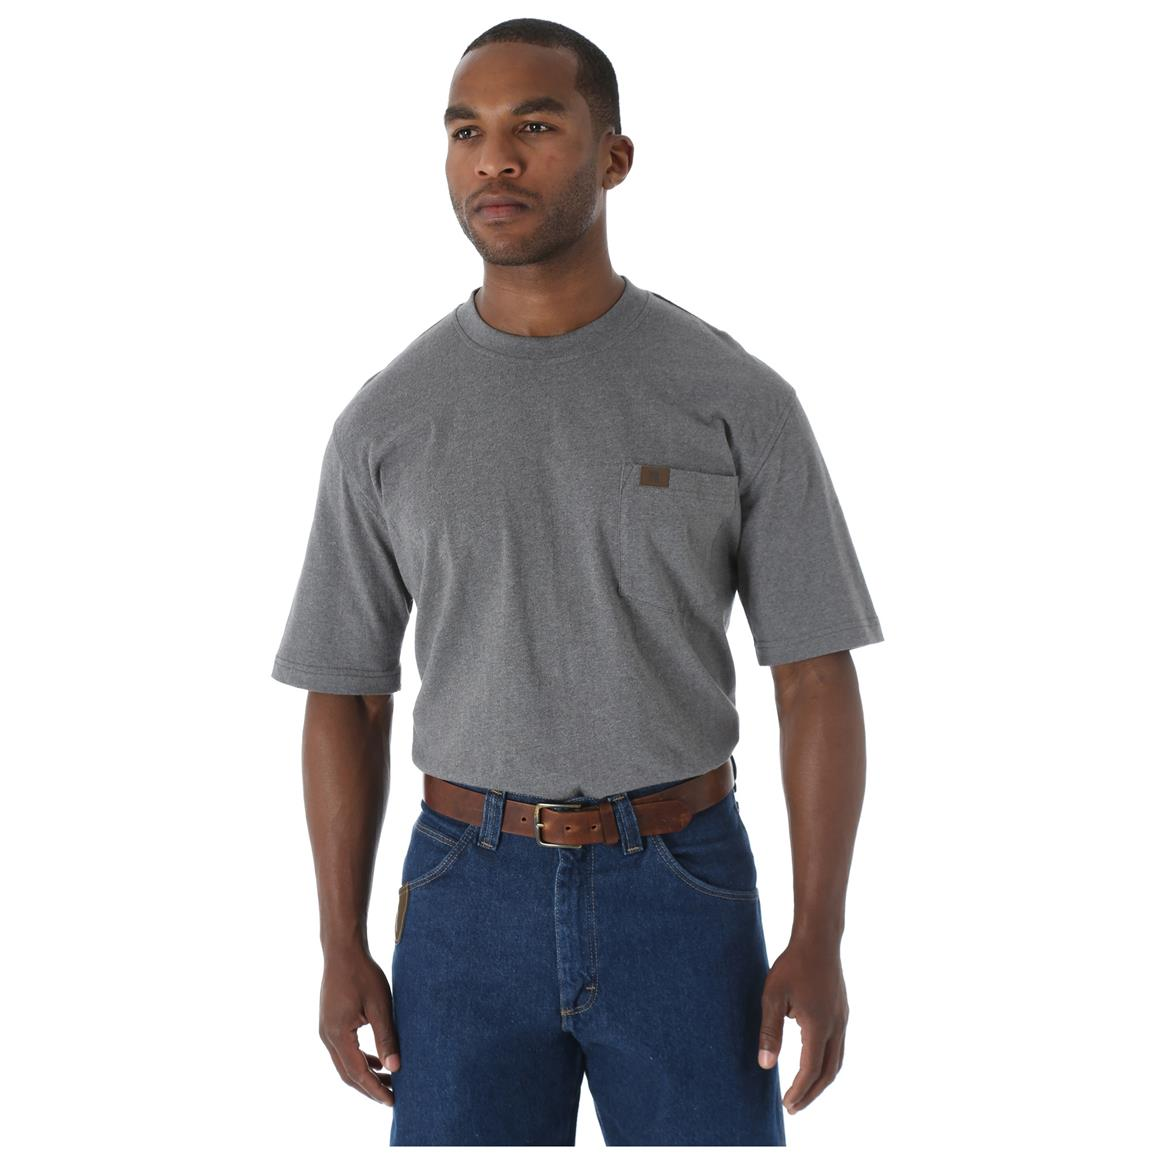 Wrangler RIGGS Workwear Men's Pocket Short Sleeve T-Shirt, Charcoal